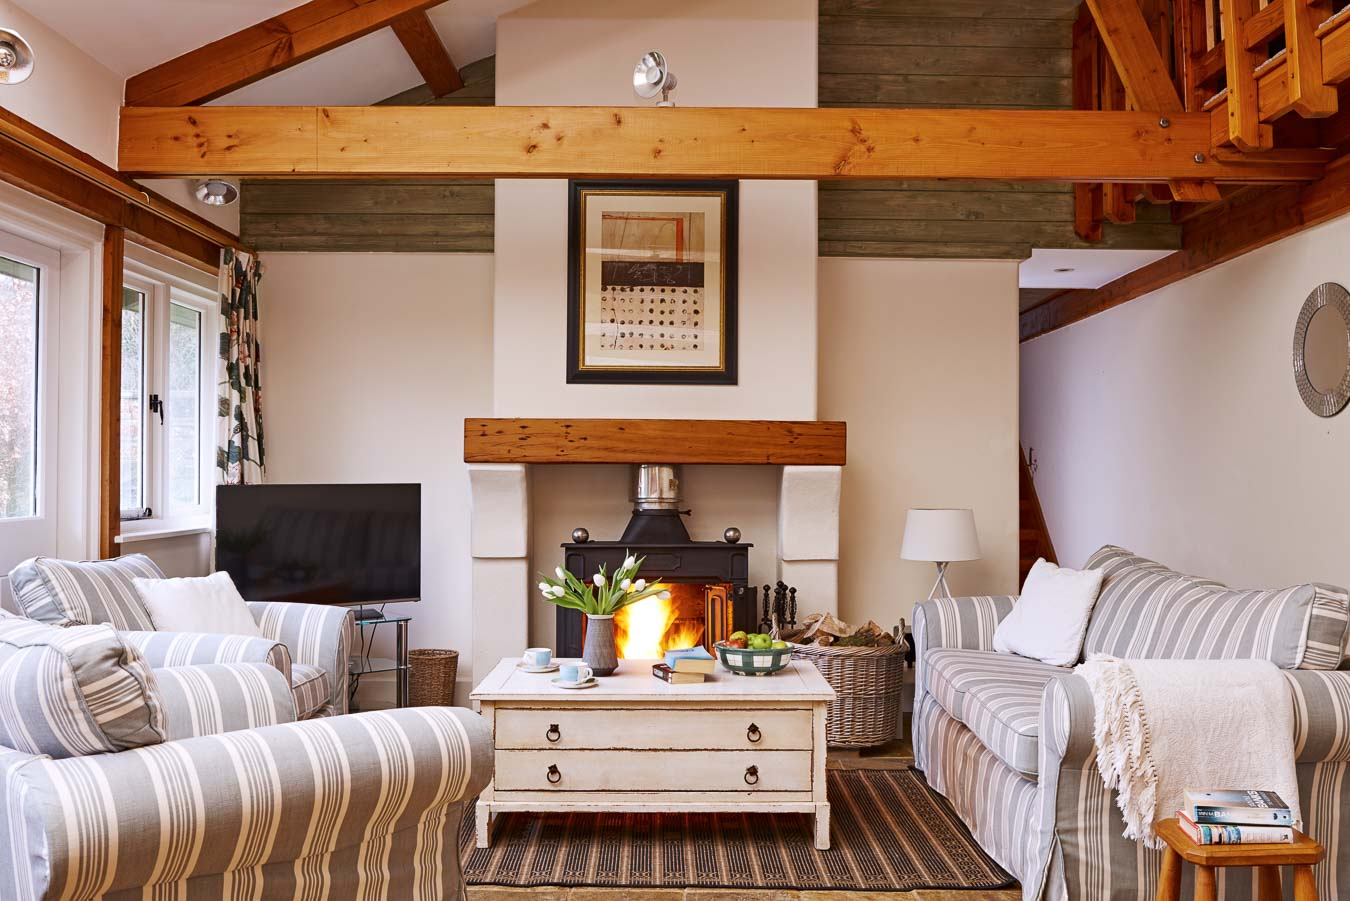 The open plan living room with exposed beams, flat screen TV and log burning stove at The Linhay cottage Flear Farm.